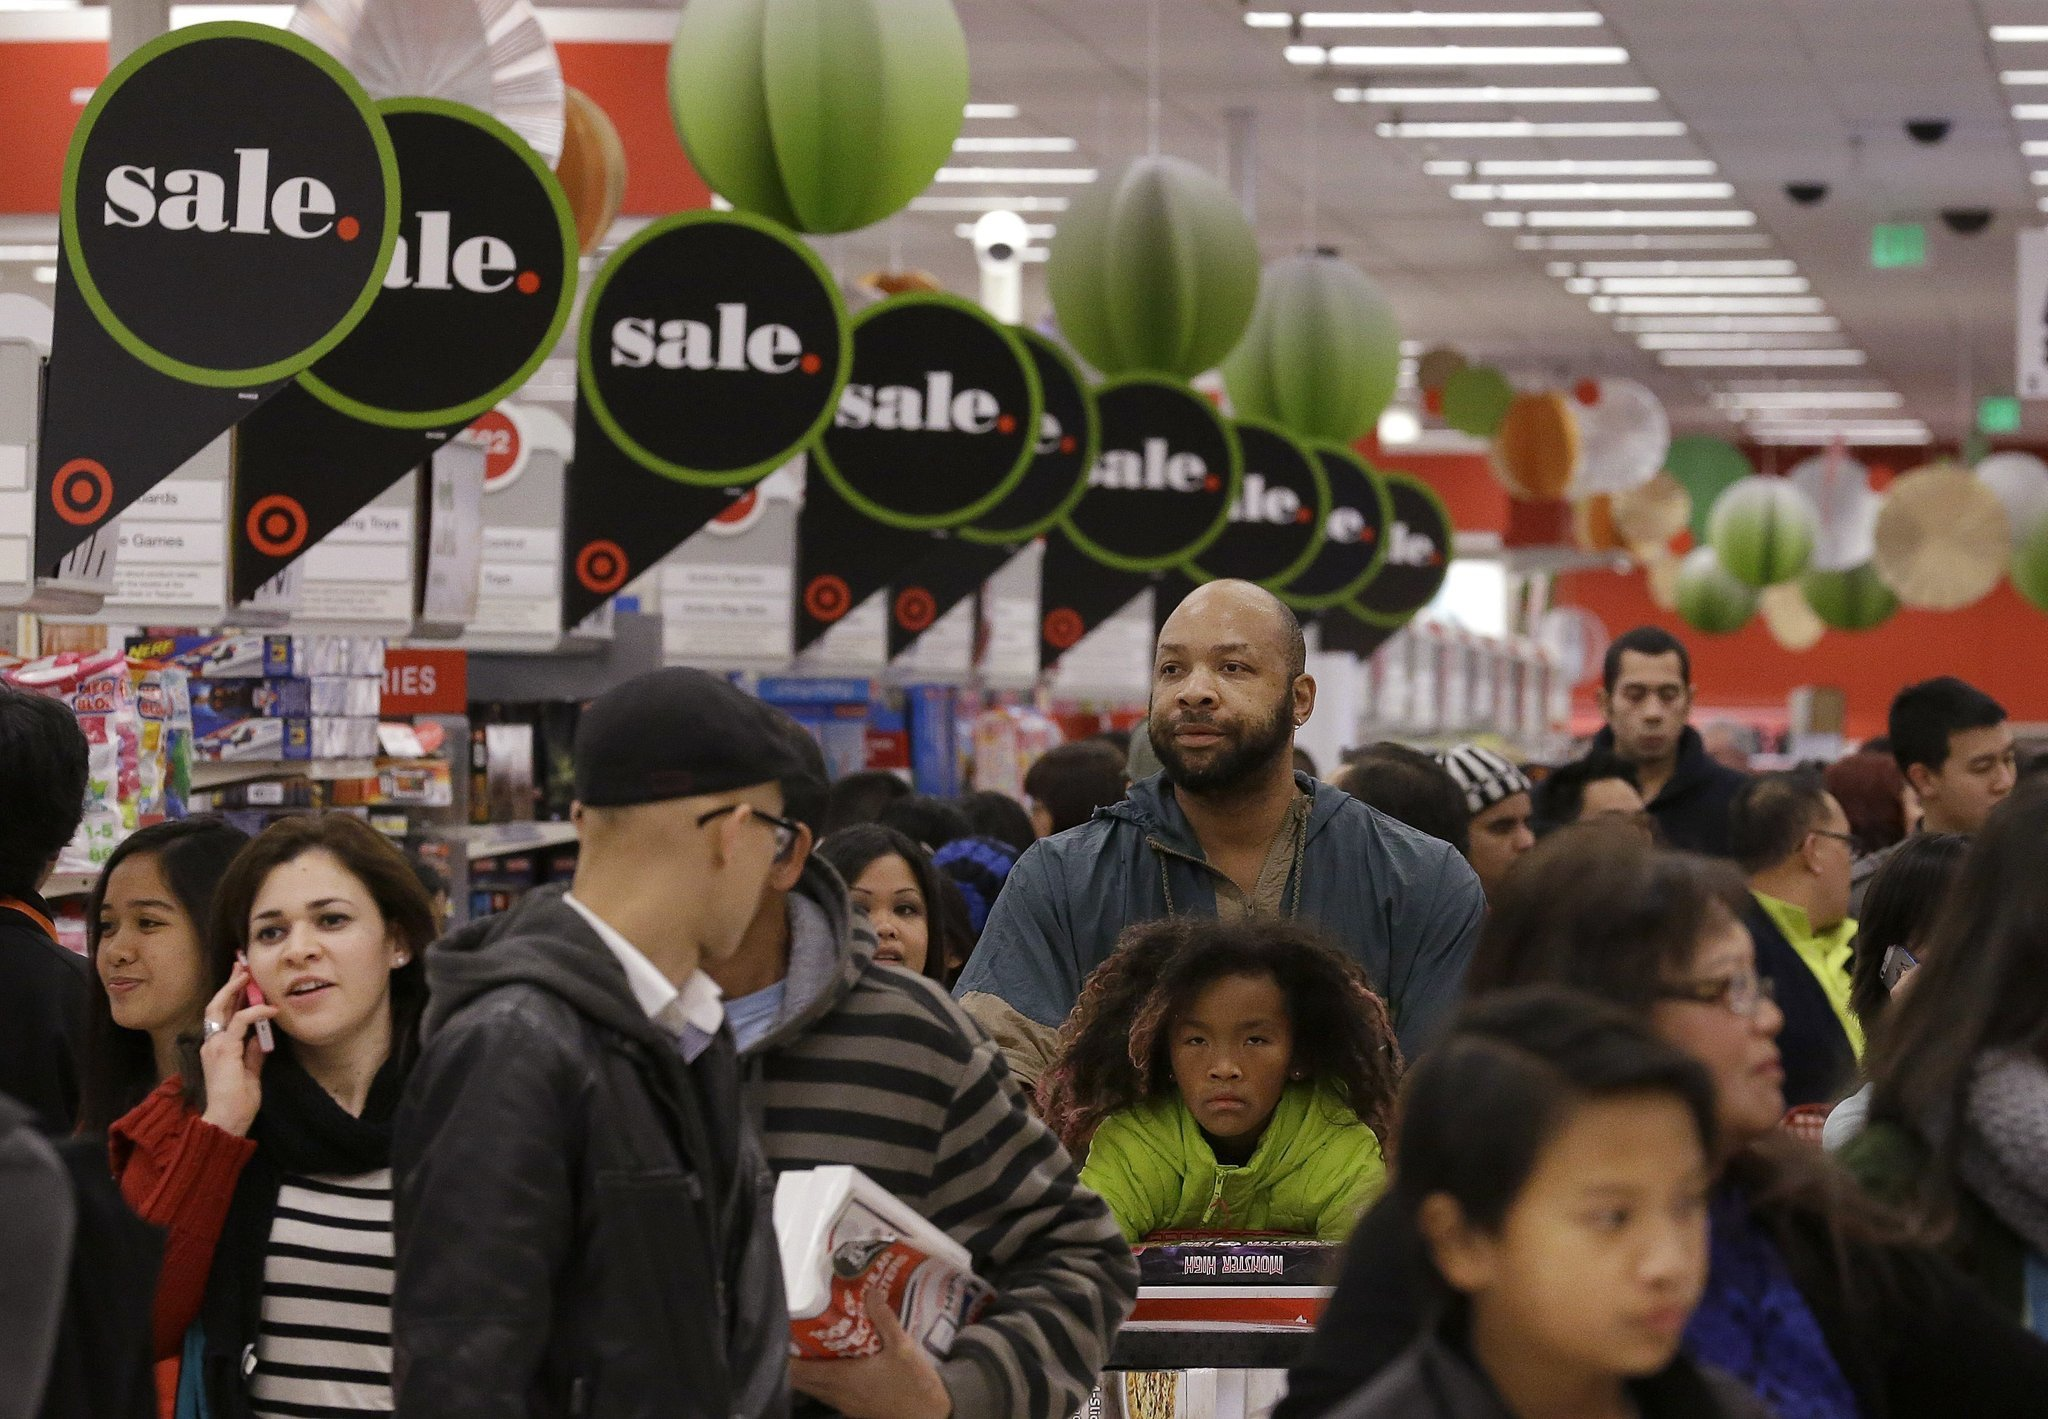 5 tips for safe shopping on Black Friday and Cyber Monday